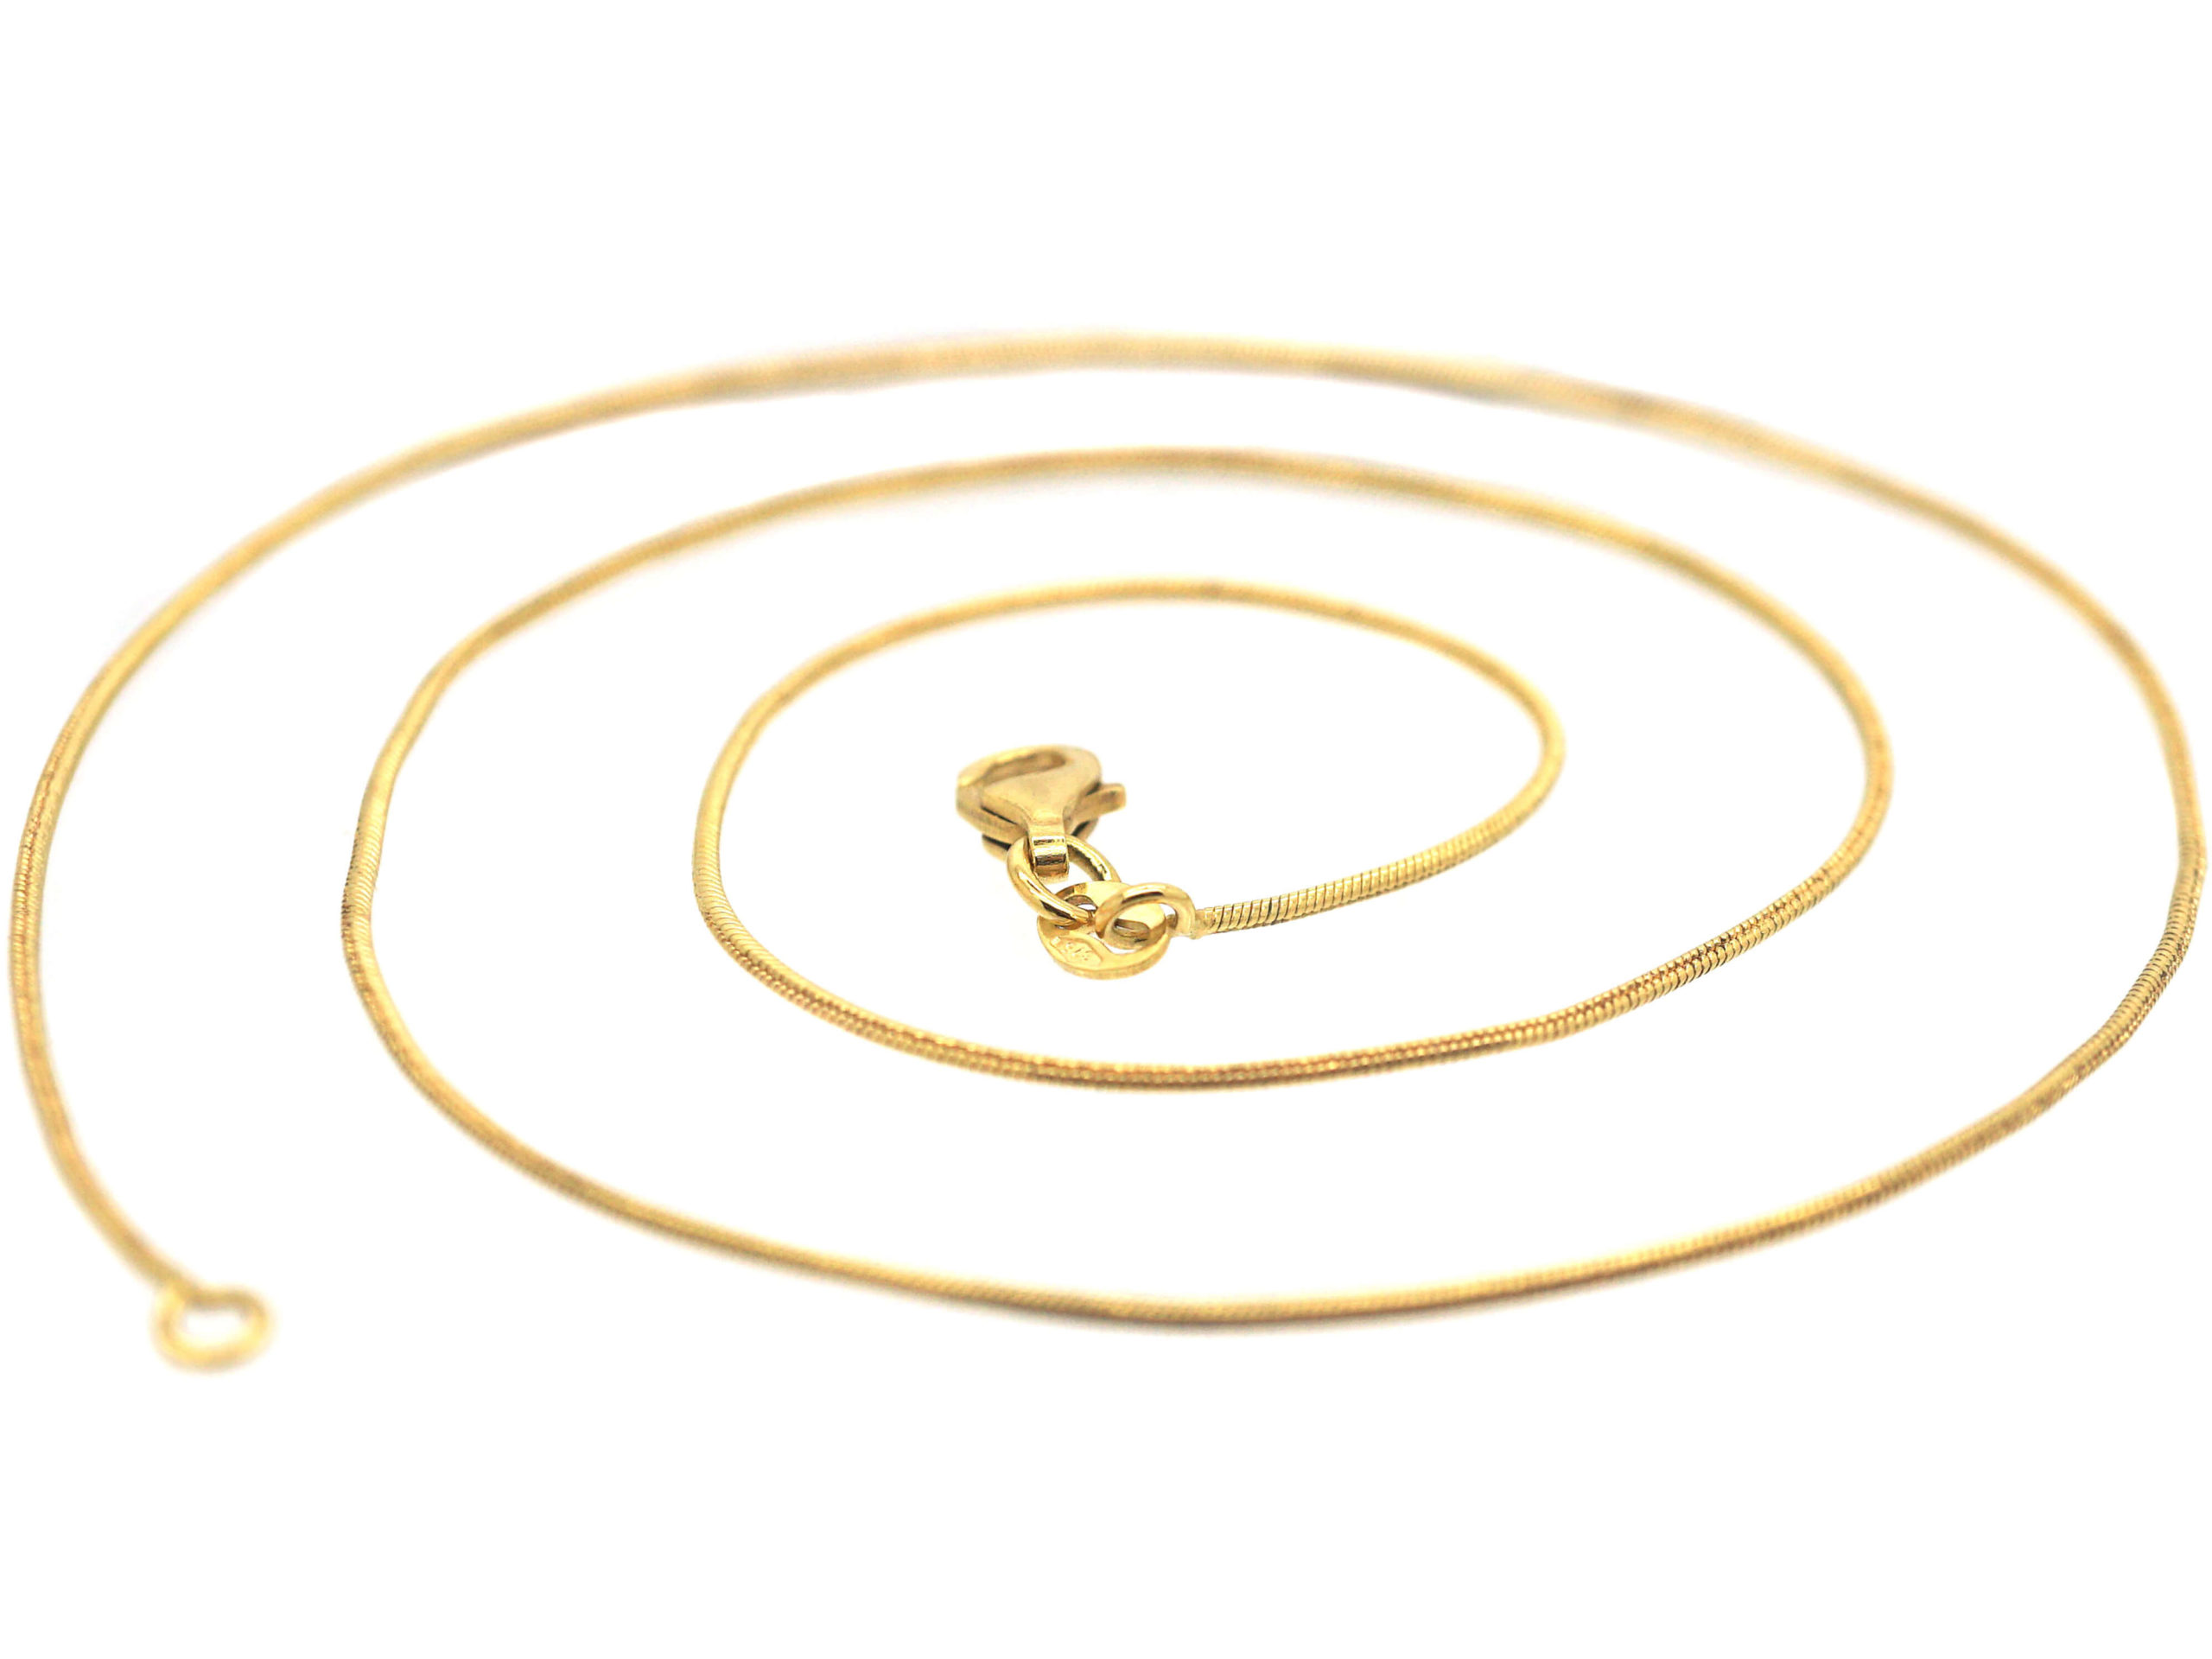 Modern 9ct Gold Snake Chain with Lobster Clasp